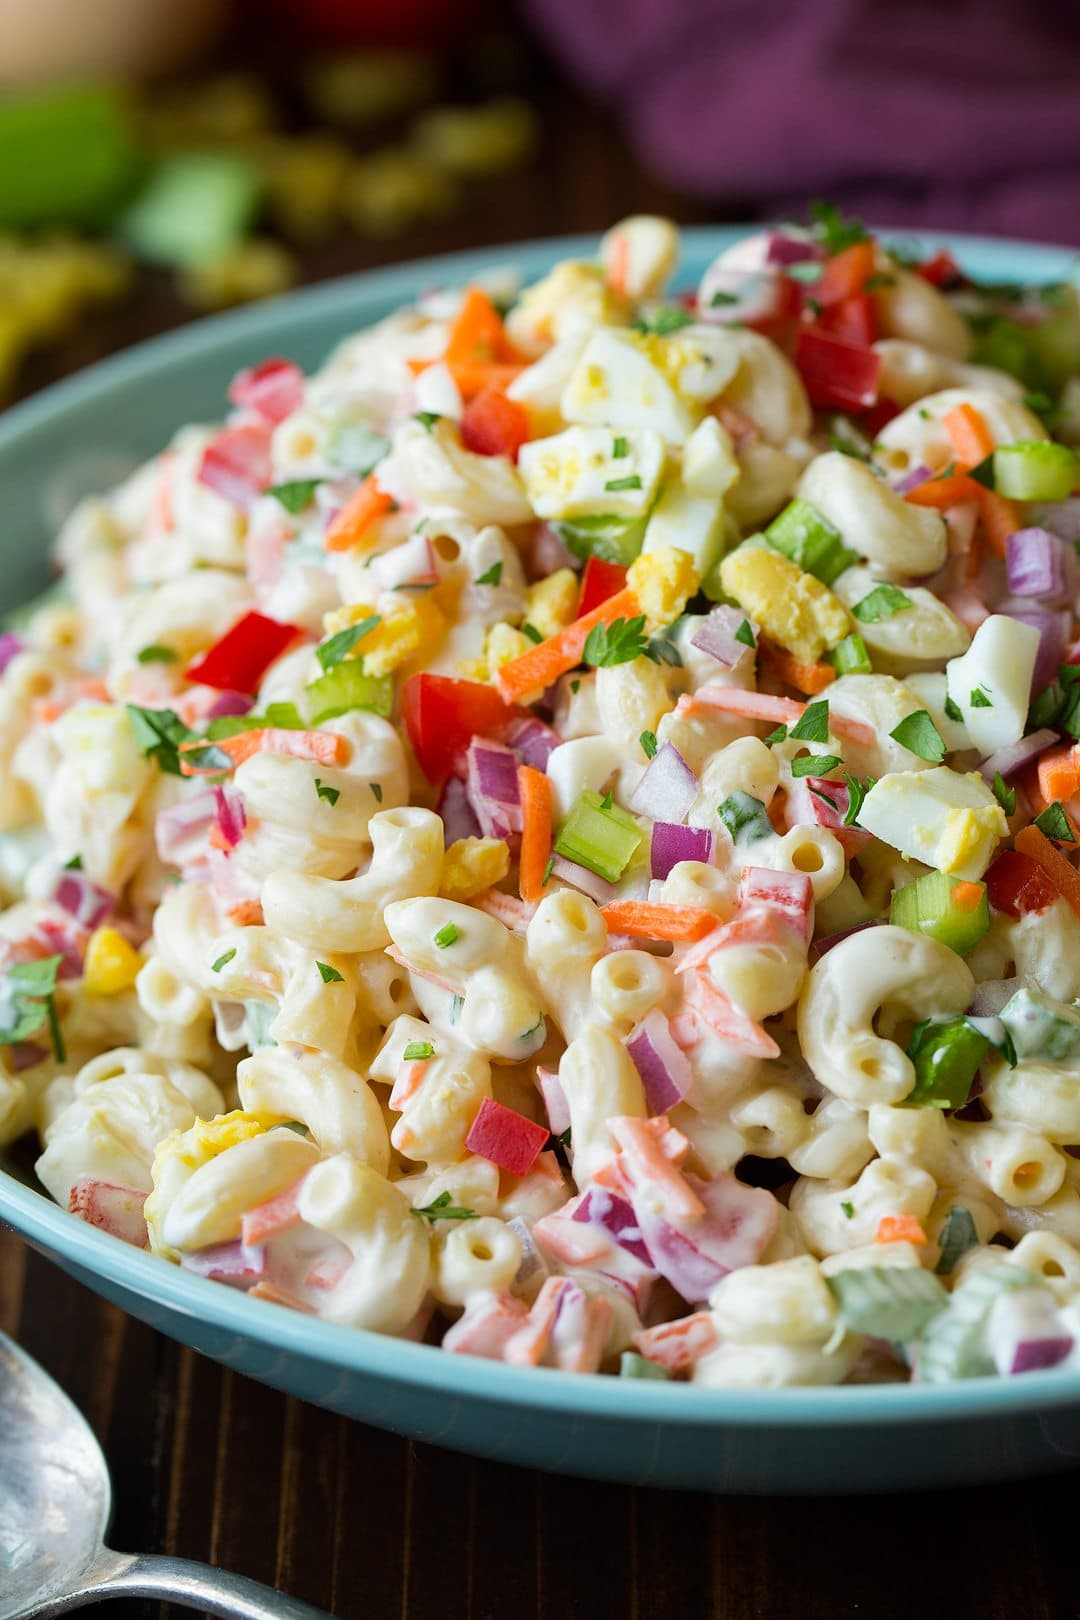 Colorful Macaroni Salad in teal serving bowl